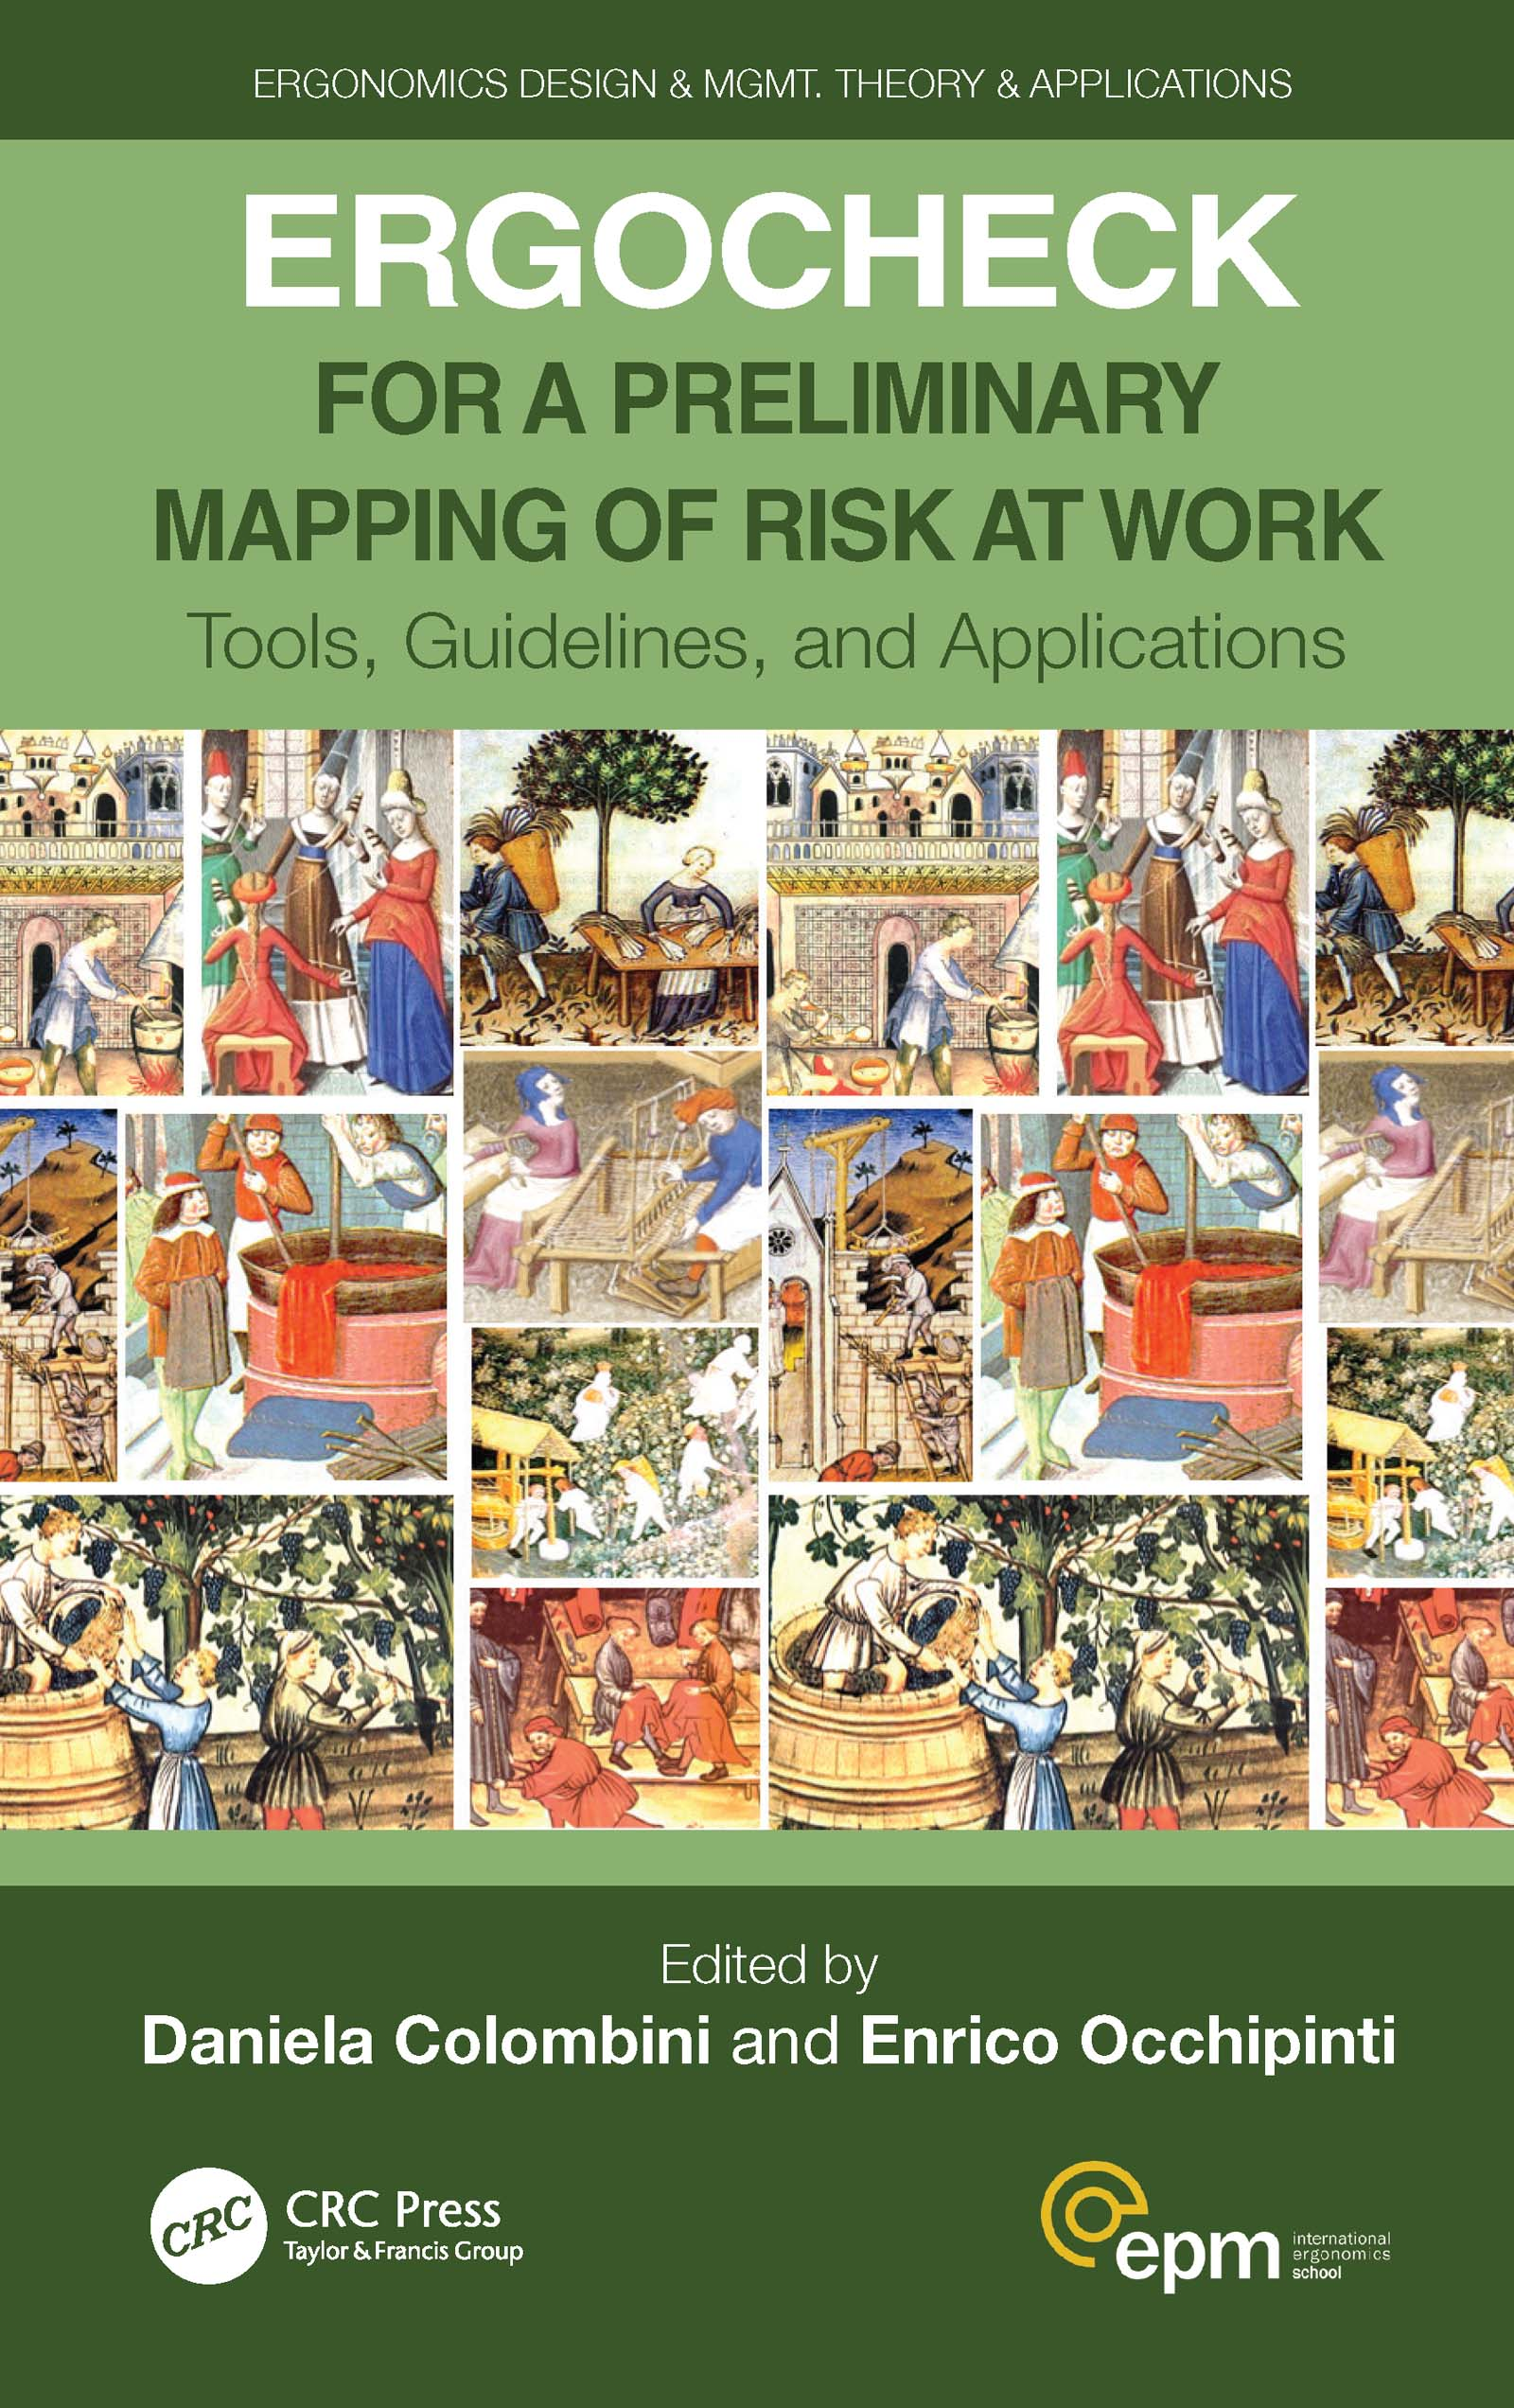 ERGOCHECK for a Preliminary Mapping of Risk at Work: Tools, Guidelines, and Applications book cover